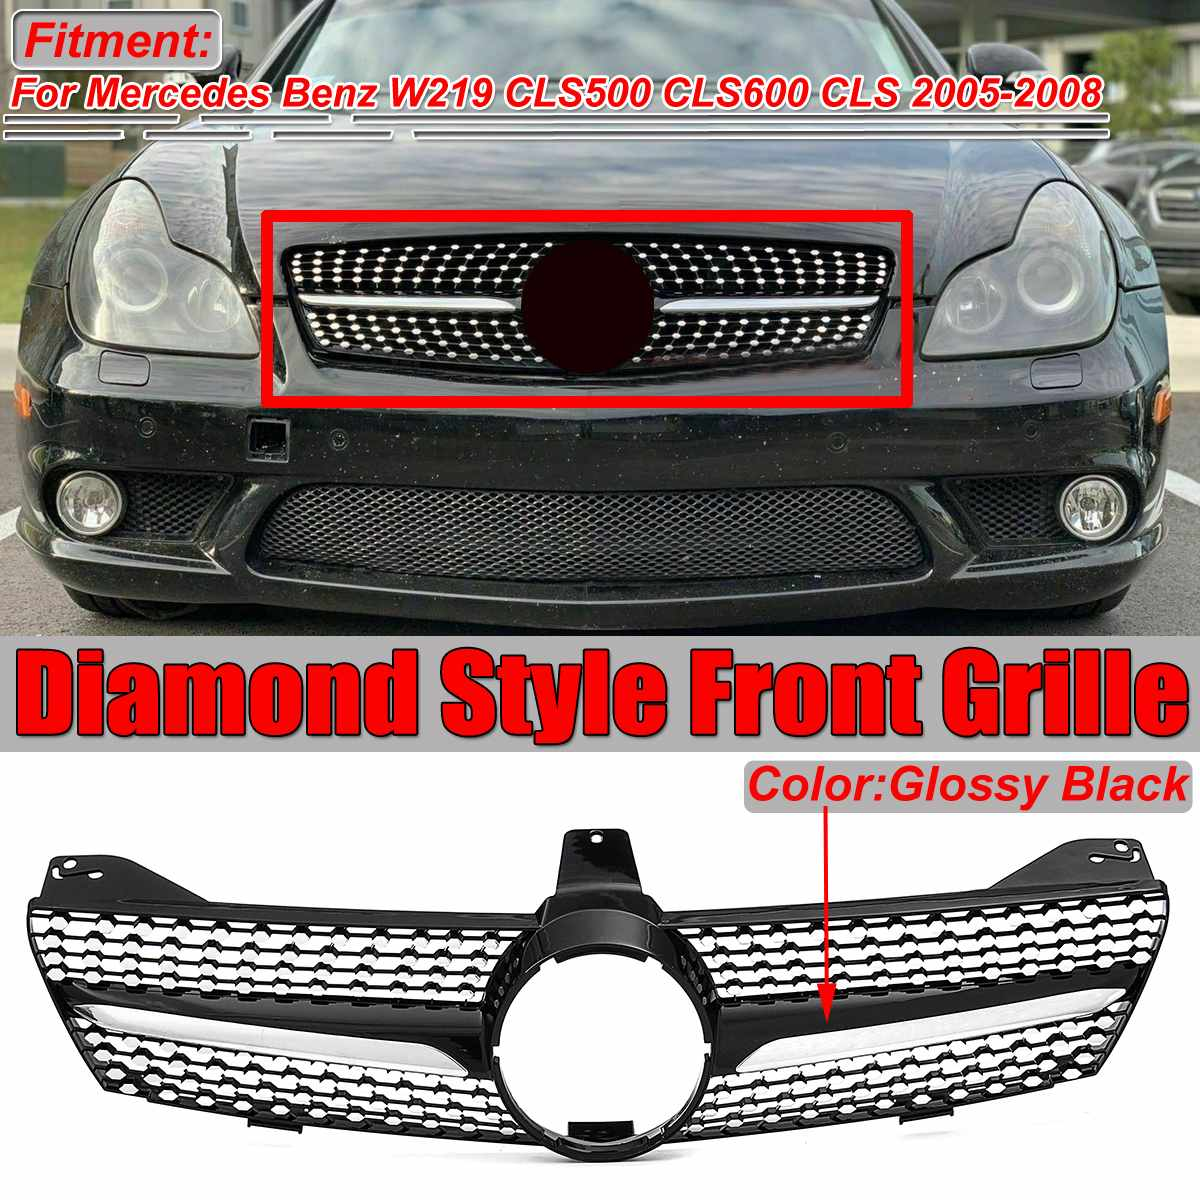 High Quality <font><b>W219</b></font> Diamond <font><b>Grill</b></font> Car Front Bumper Grille <font><b>Grill</b></font> For Mercedes For Benz <font><b>W219</b></font> CLS500 CLS600 CLS 2005 2006 2007 2008 image